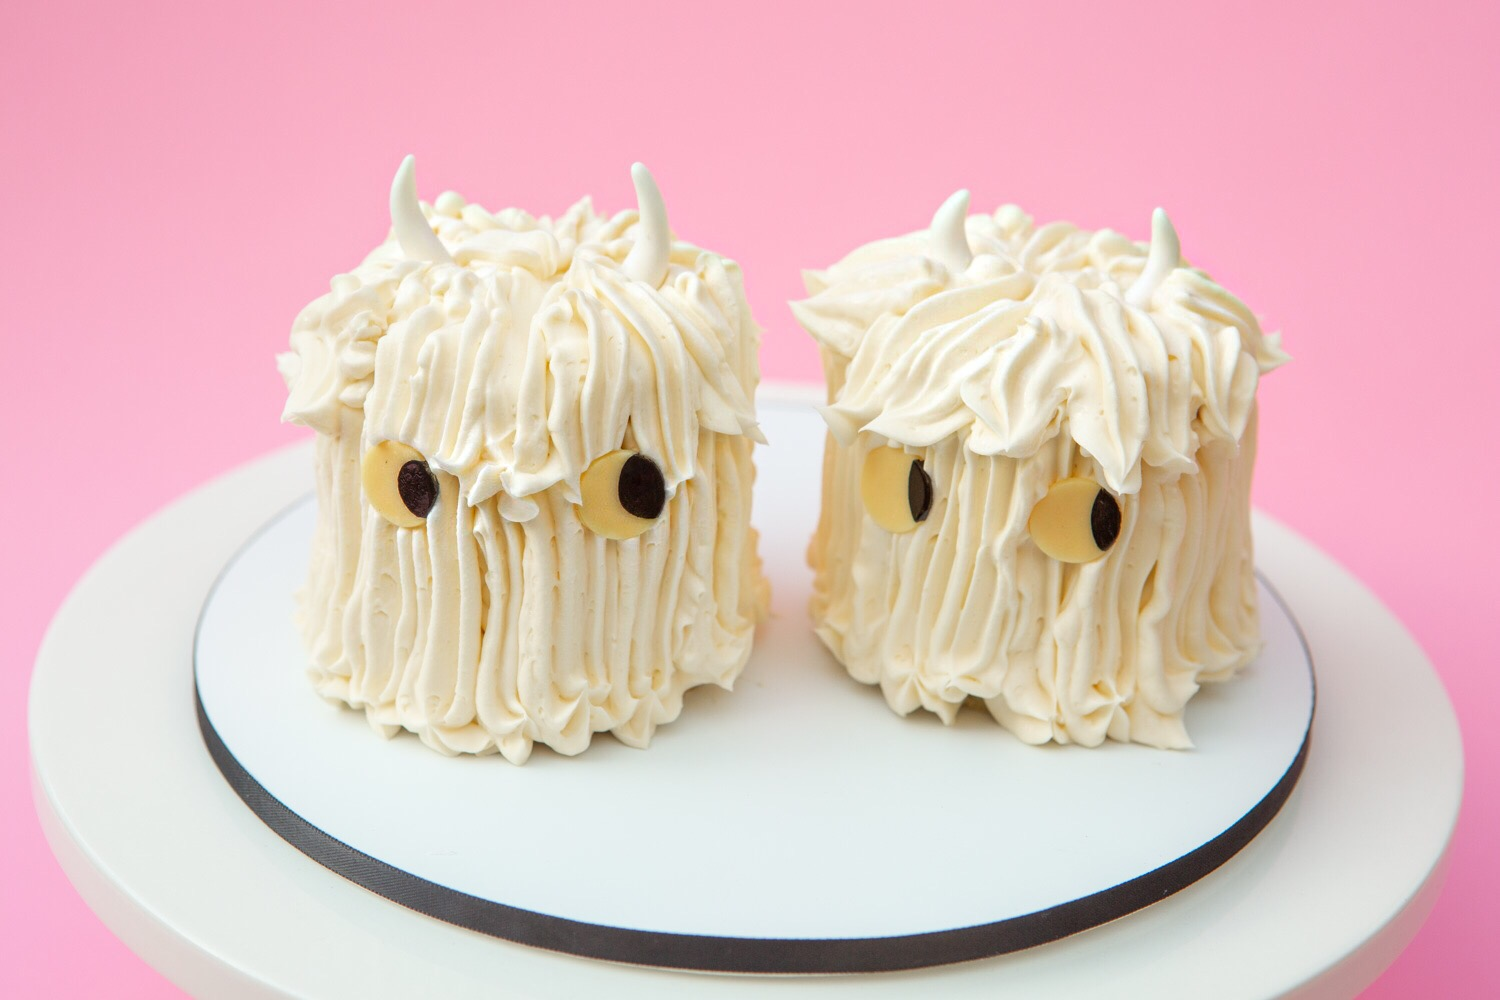 Where the Wild Things Are Mini Cakes